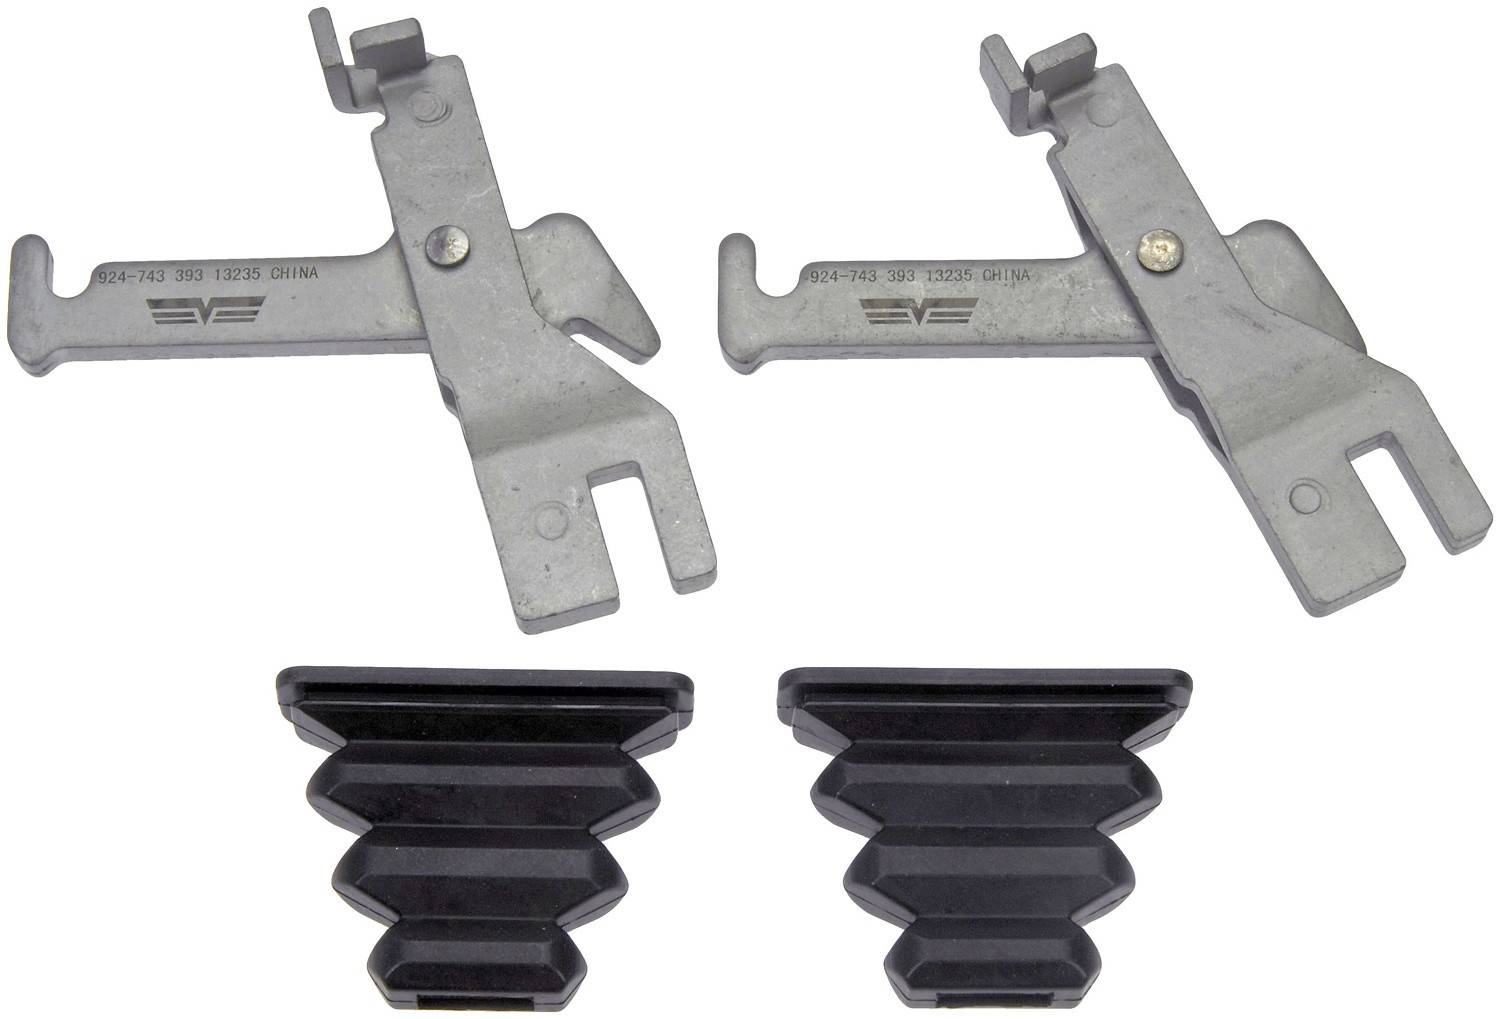 DORMAN OE SOLUTIONS - Parking Brake Lever Kit - DRE 924-743